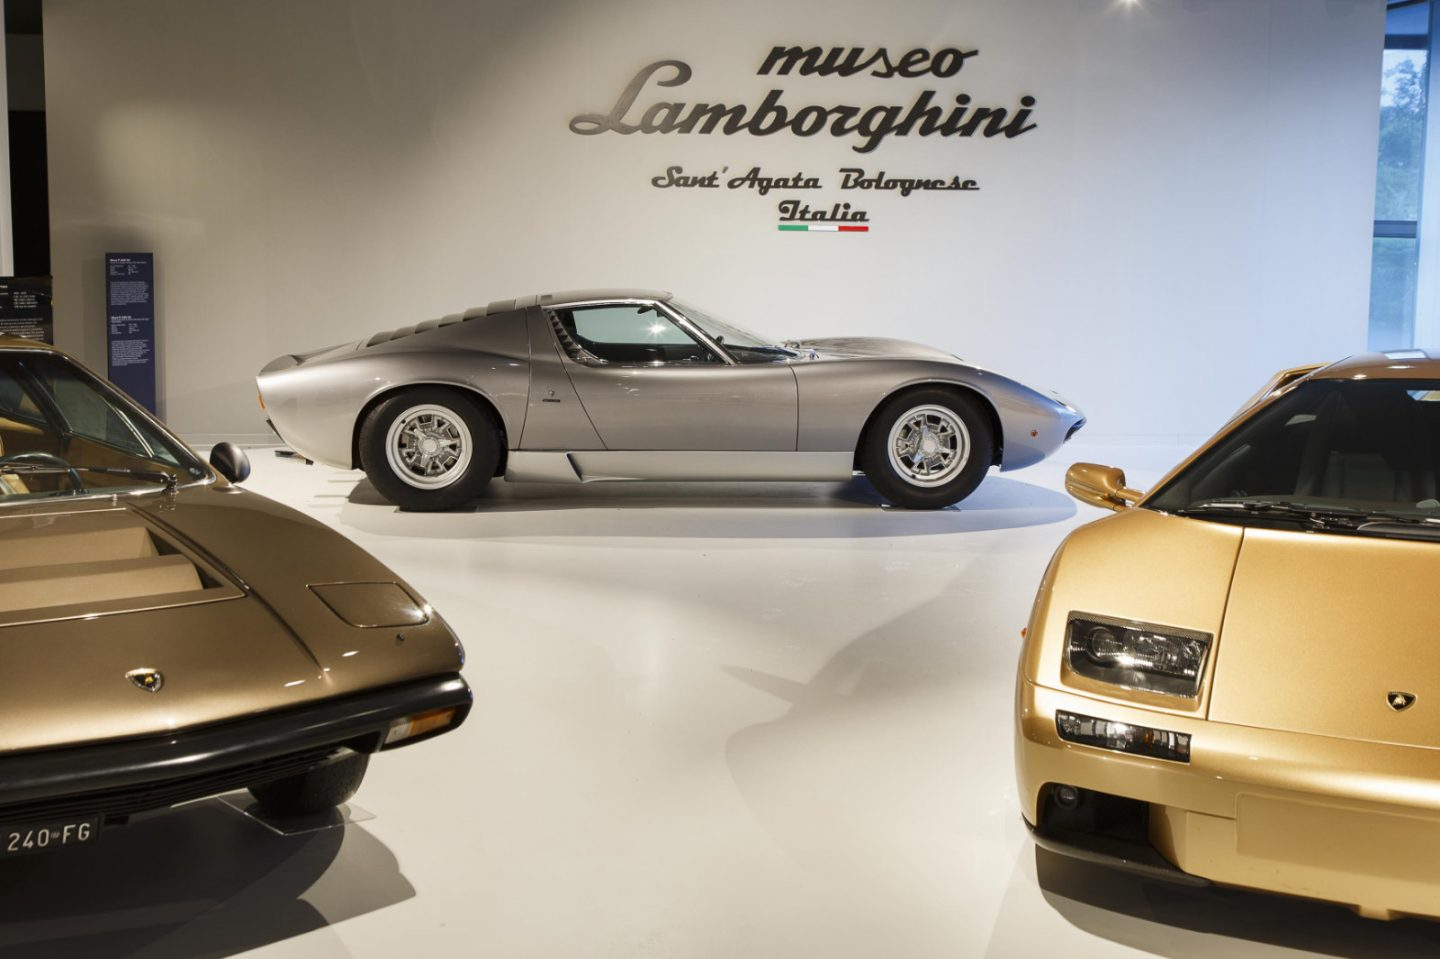 Lamborghini Museum at Sant'Agata Bolognese to host Ayrton Senna exhibition from April 12